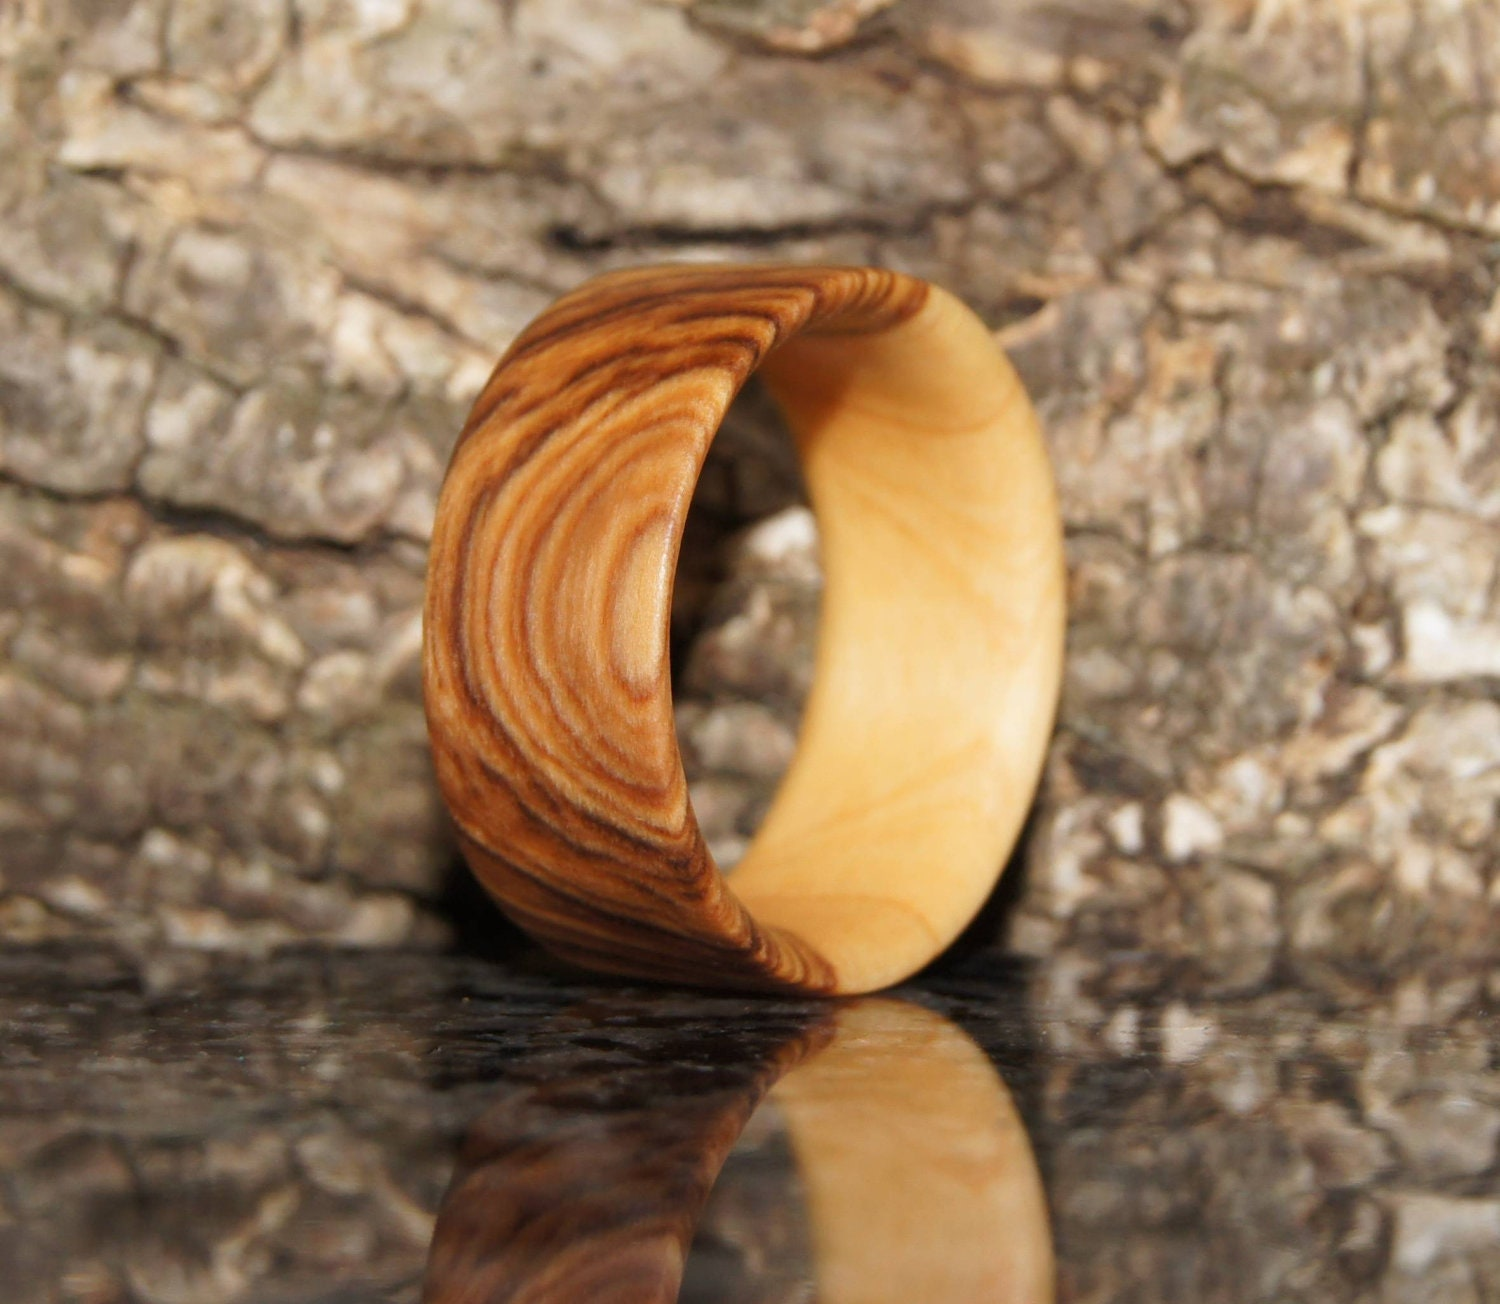 Size 9 - Olive wood ring